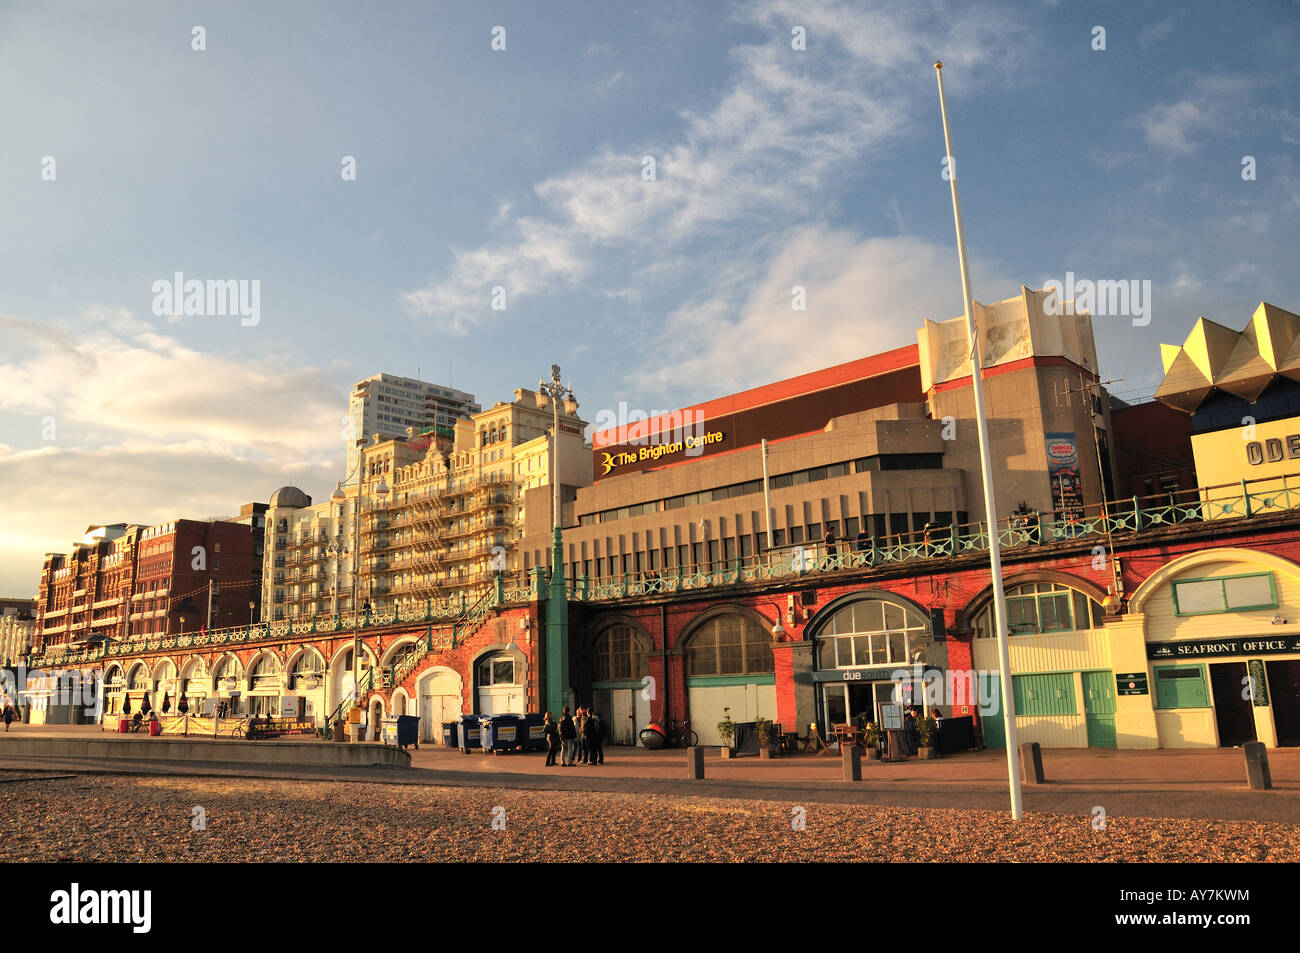 Brighton seafront - the view of the Brighton Centre and the Grand Hotel, East Sussex, England - Stock Image